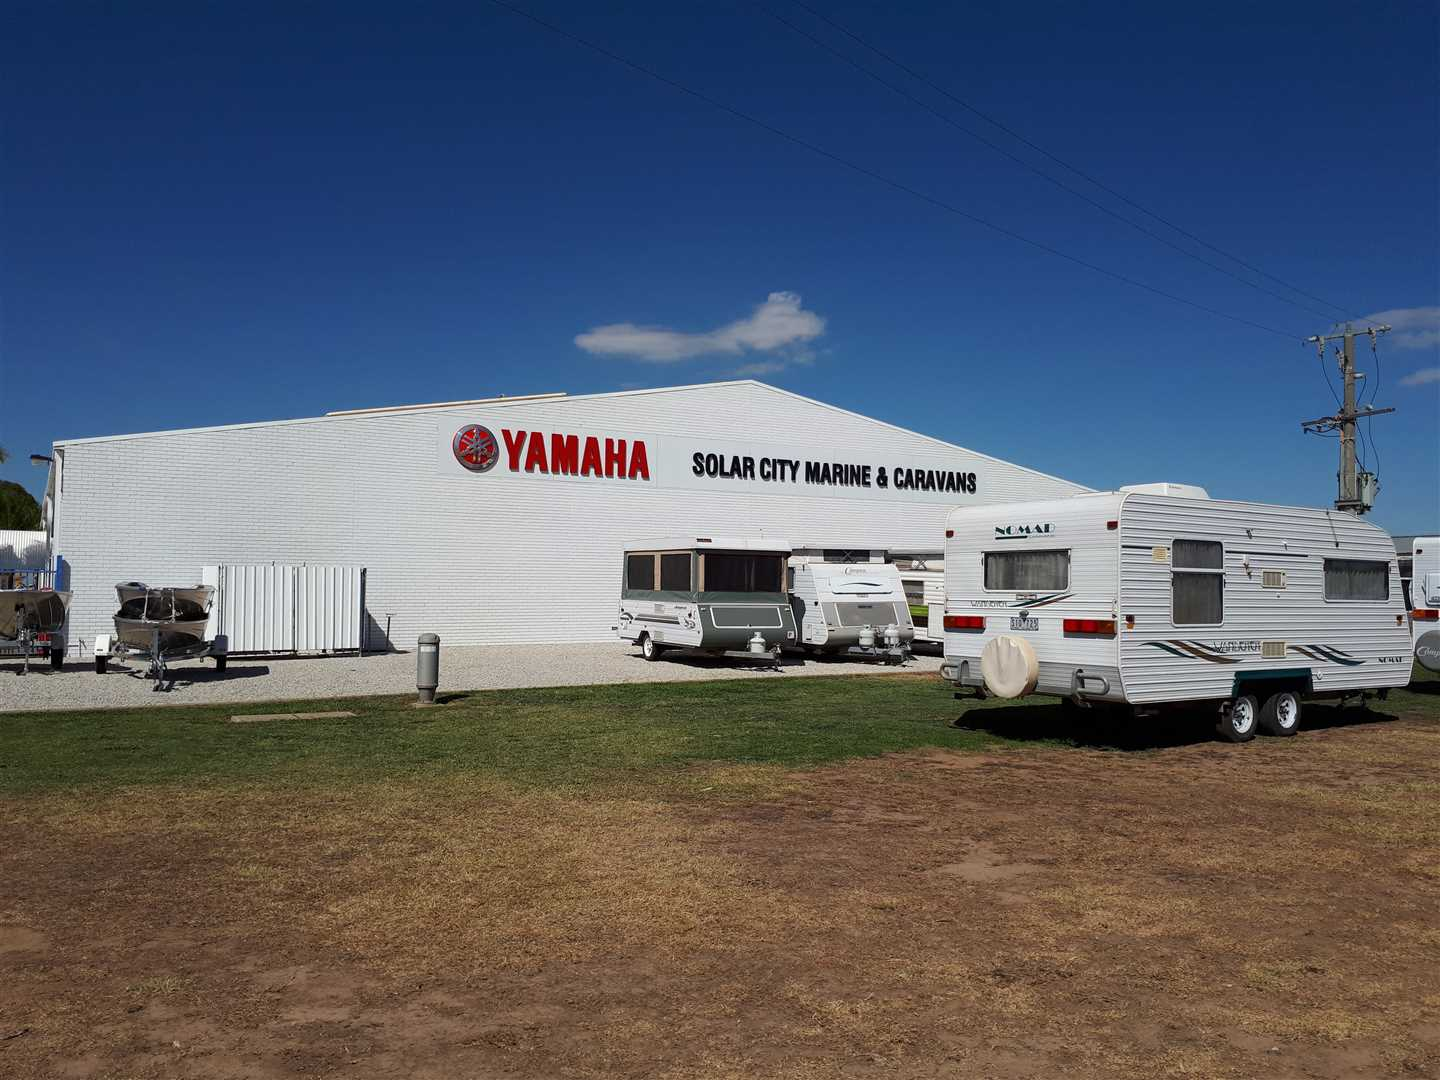 Business for Sale - Solar City Marine & Caravans, Shepparton